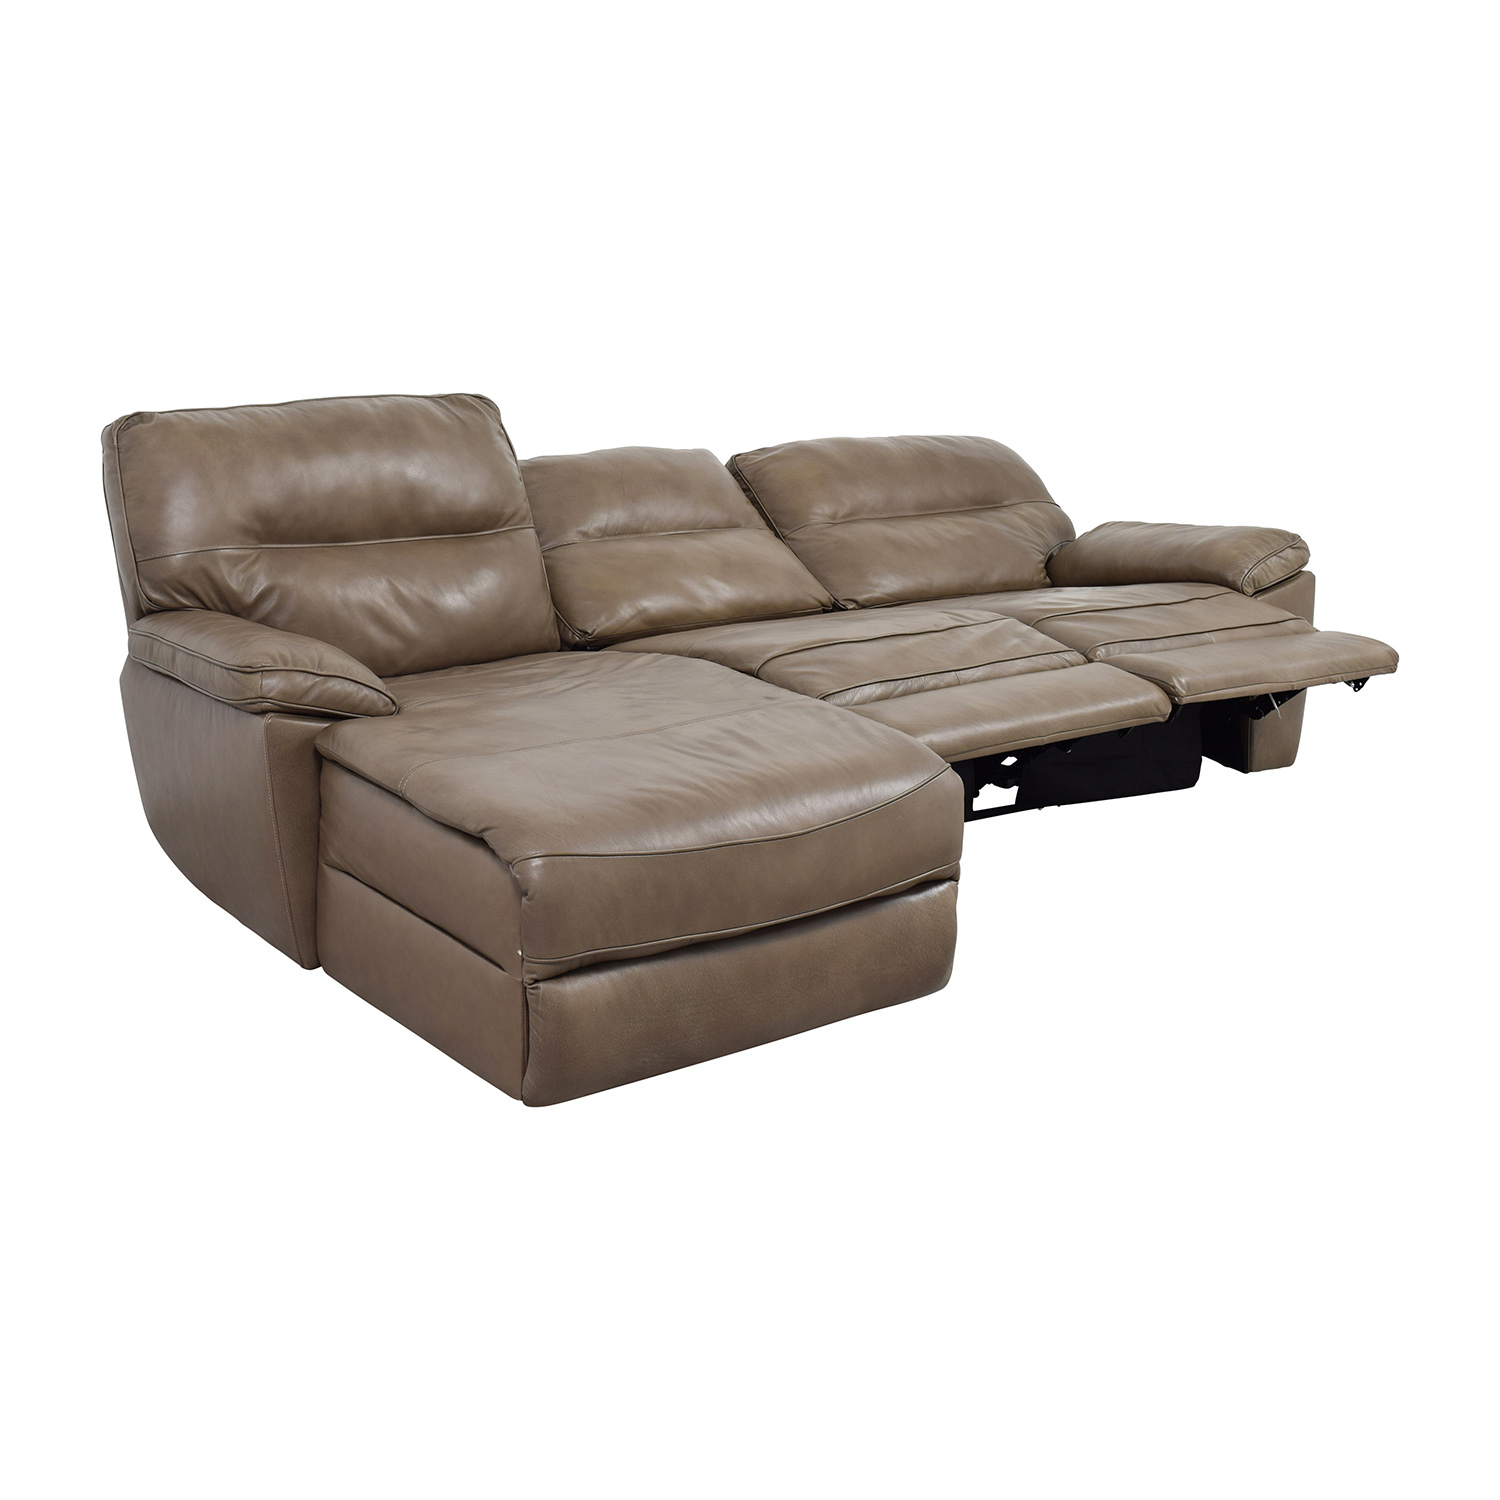 Chaise lounge recliner chair chairs seating for Catnapper jackpot reclining chaise 3989